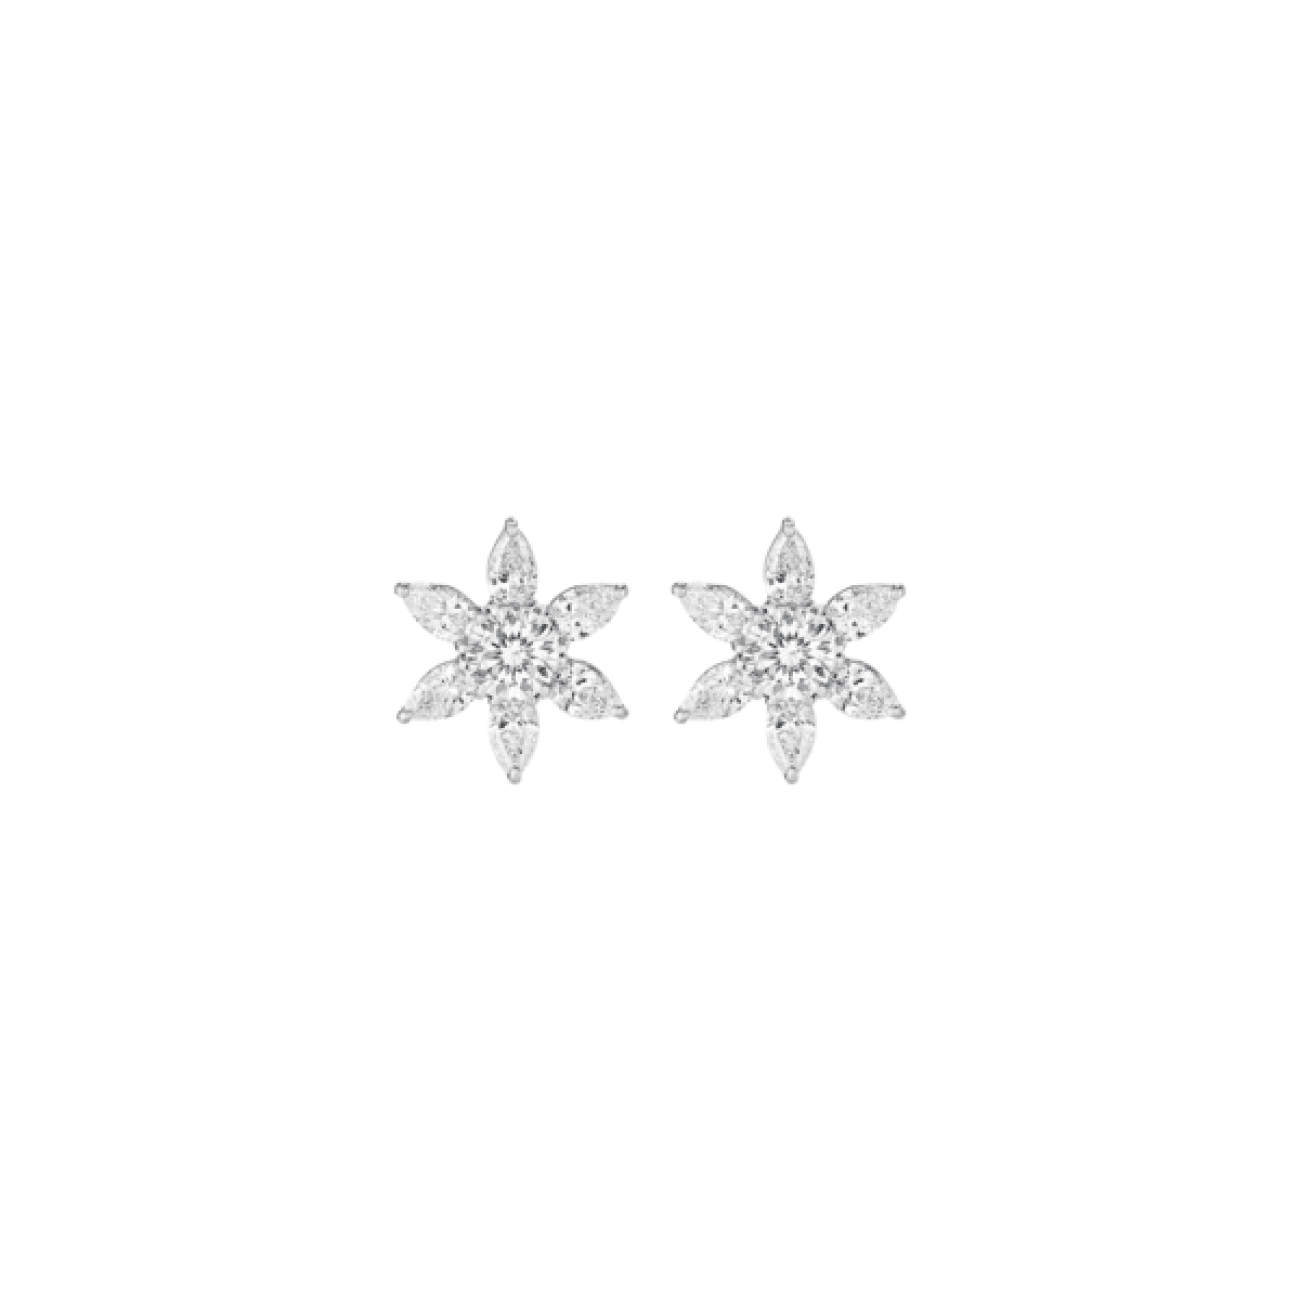 https://www.manfredijewels.com/collections/jewelry/products/cento-collection-diamond-stelle-stud-earrings